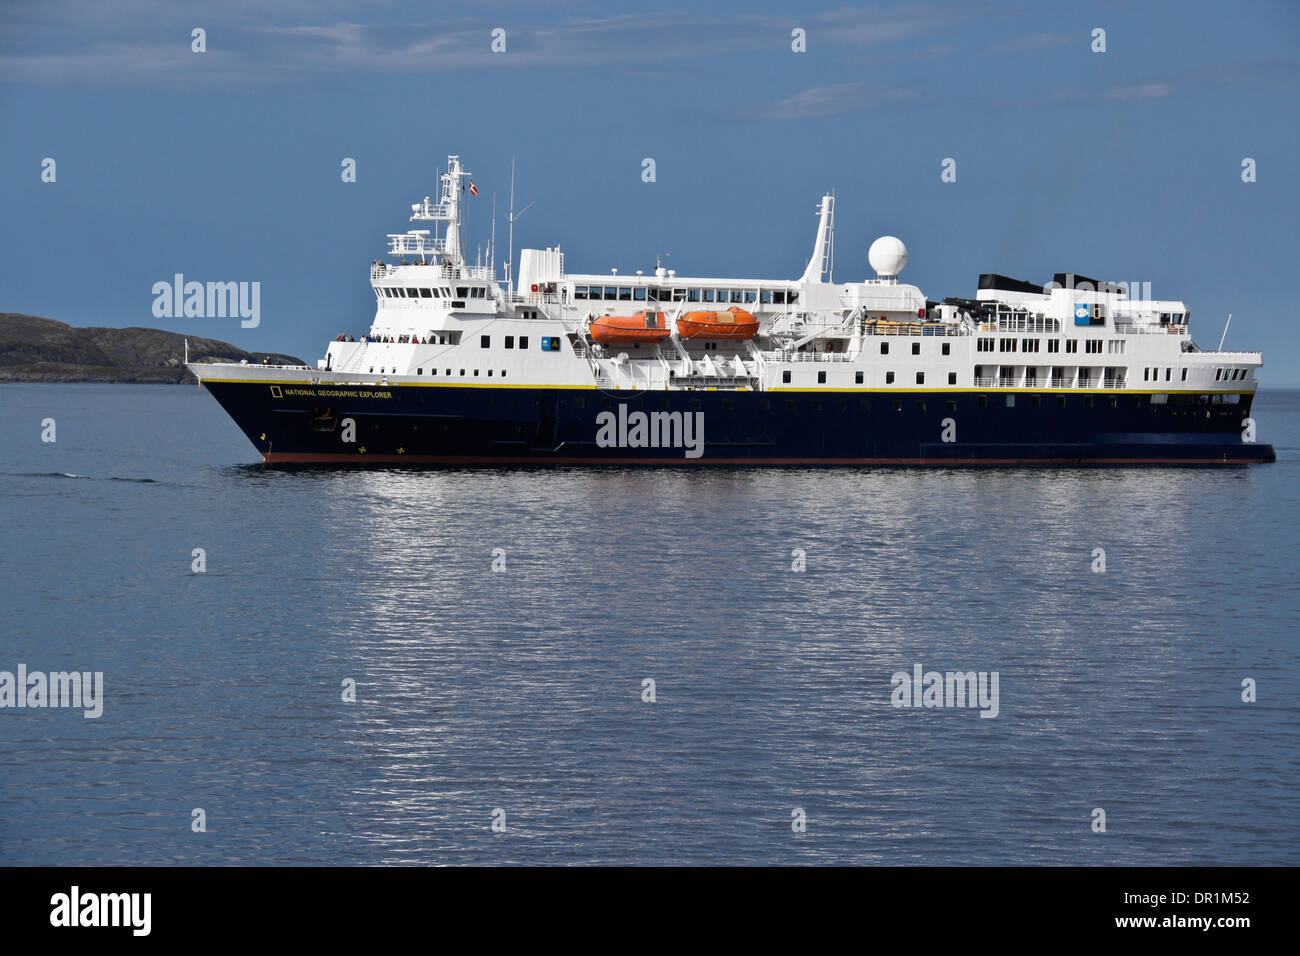 National Geographic Explorer cruise ship in harbor, Sisimiut (Holsteinsborg), West Greenland - Stock Image